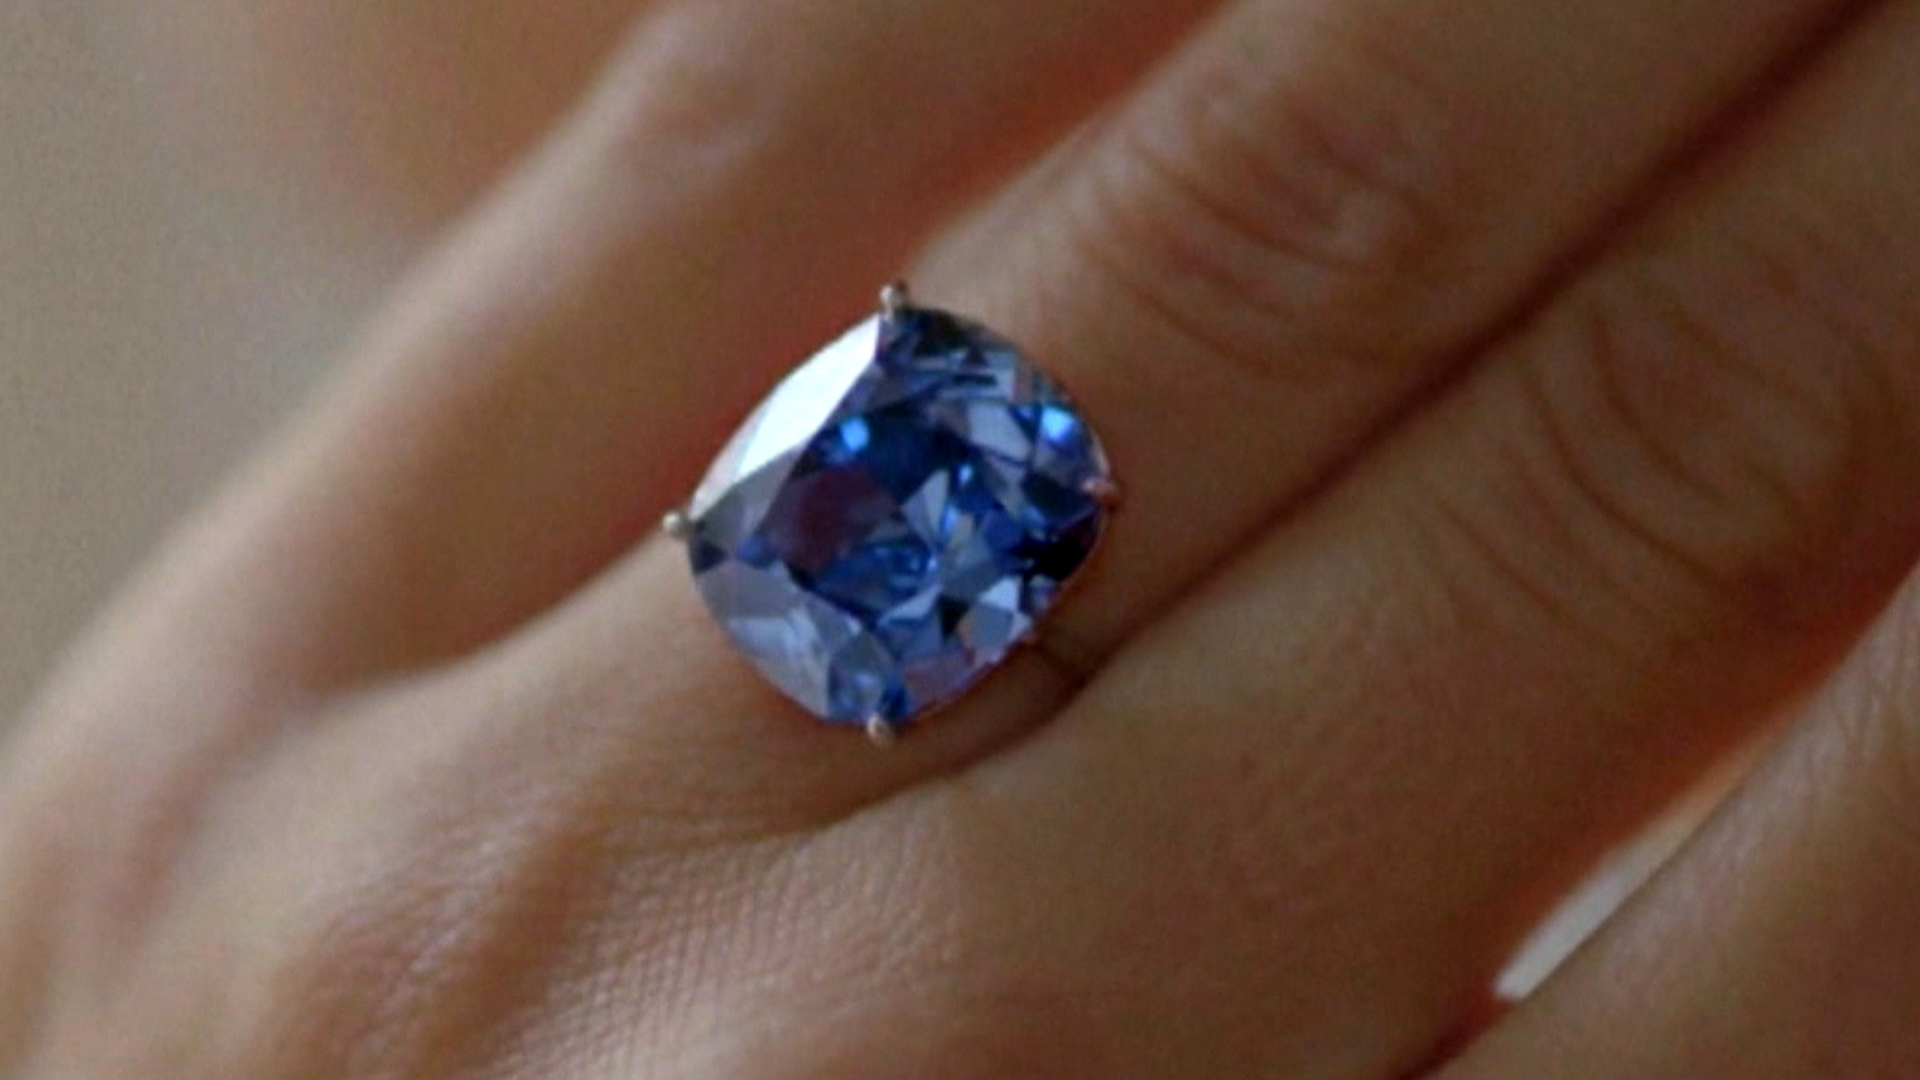 Rare Blue Diamond Sells for Record $48 5 Million at Auction NBC News